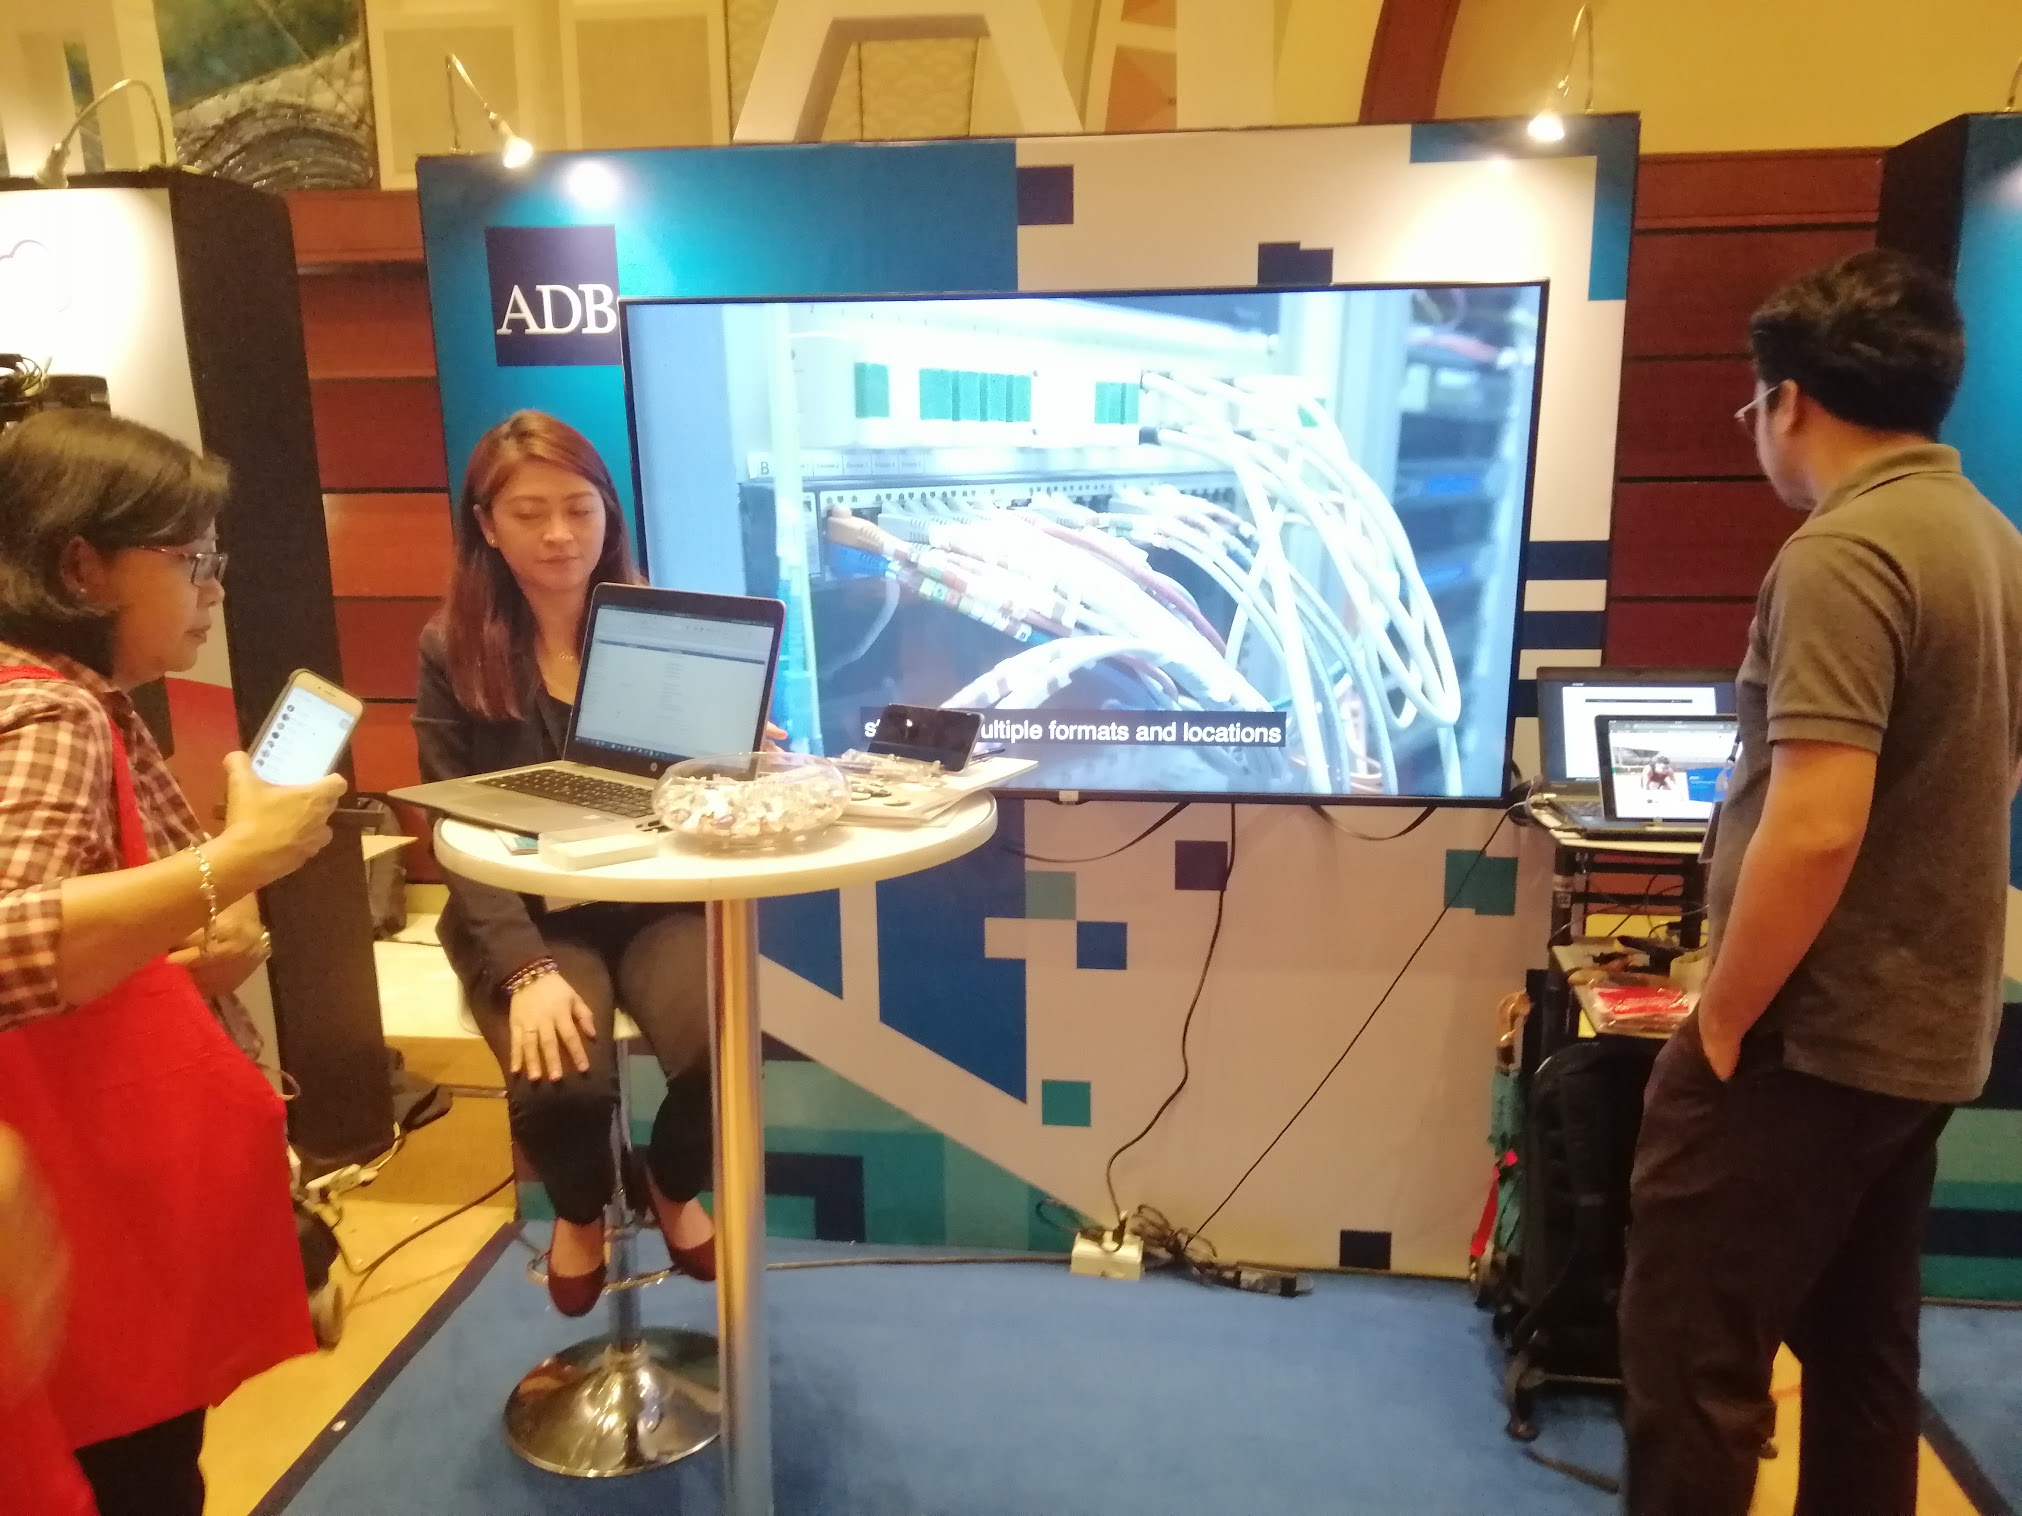 12: 26 p.m. - Drop by ERNI's booth to learn more about their projects.